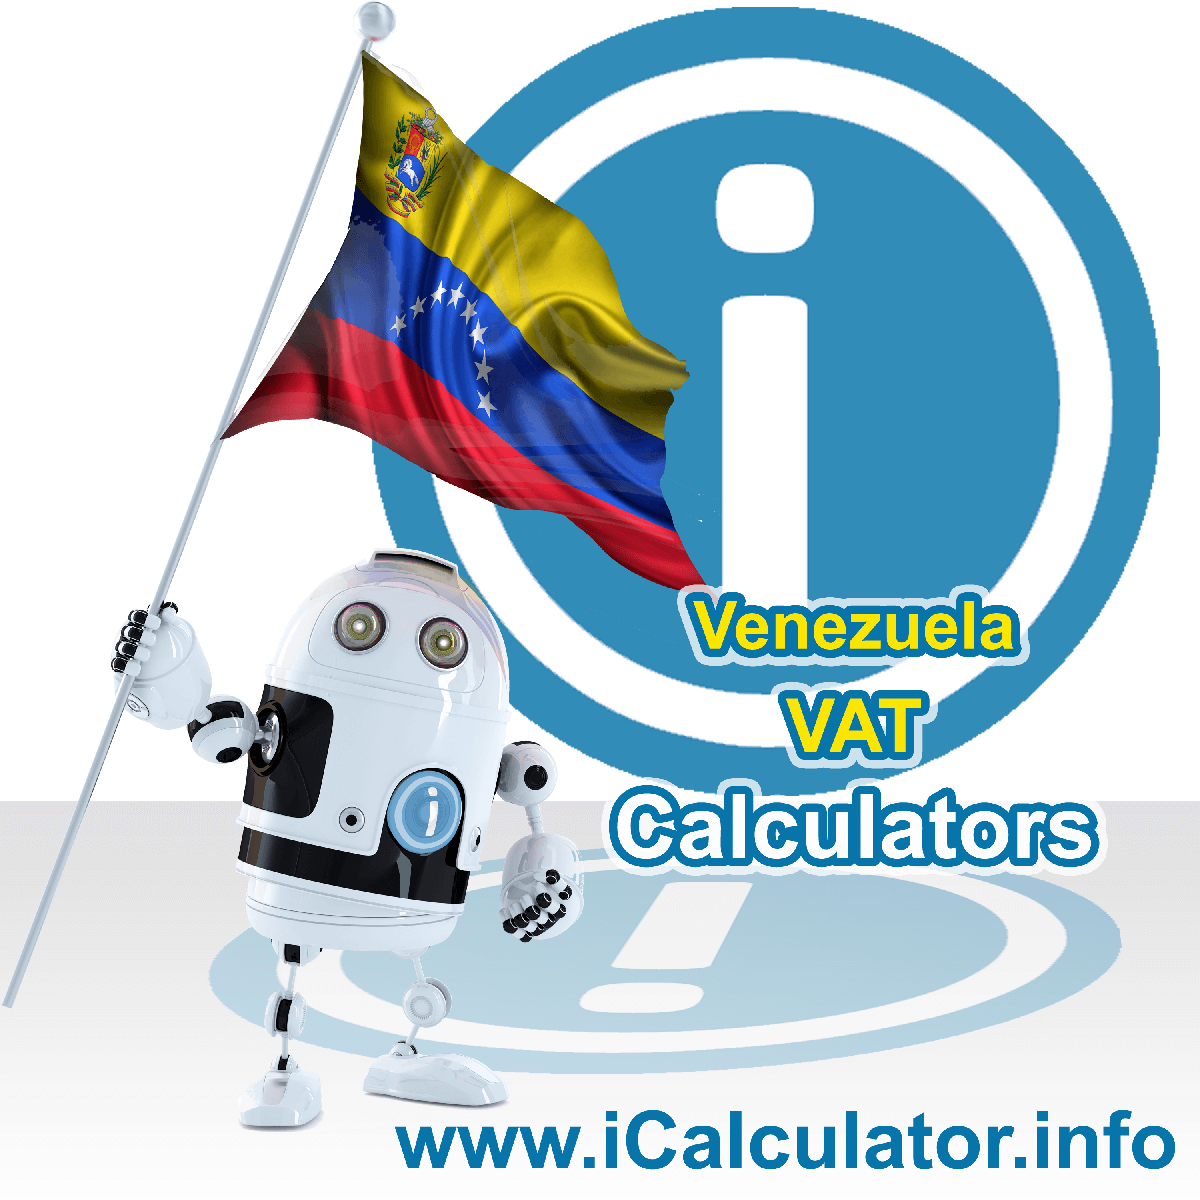 Venezuela VAT Calculator. This image shows the Venezuela flag and information relating to the VAT formula used for calculating Value Added Tax in Venezuela using the Venezuela VAT Calculator in 2020